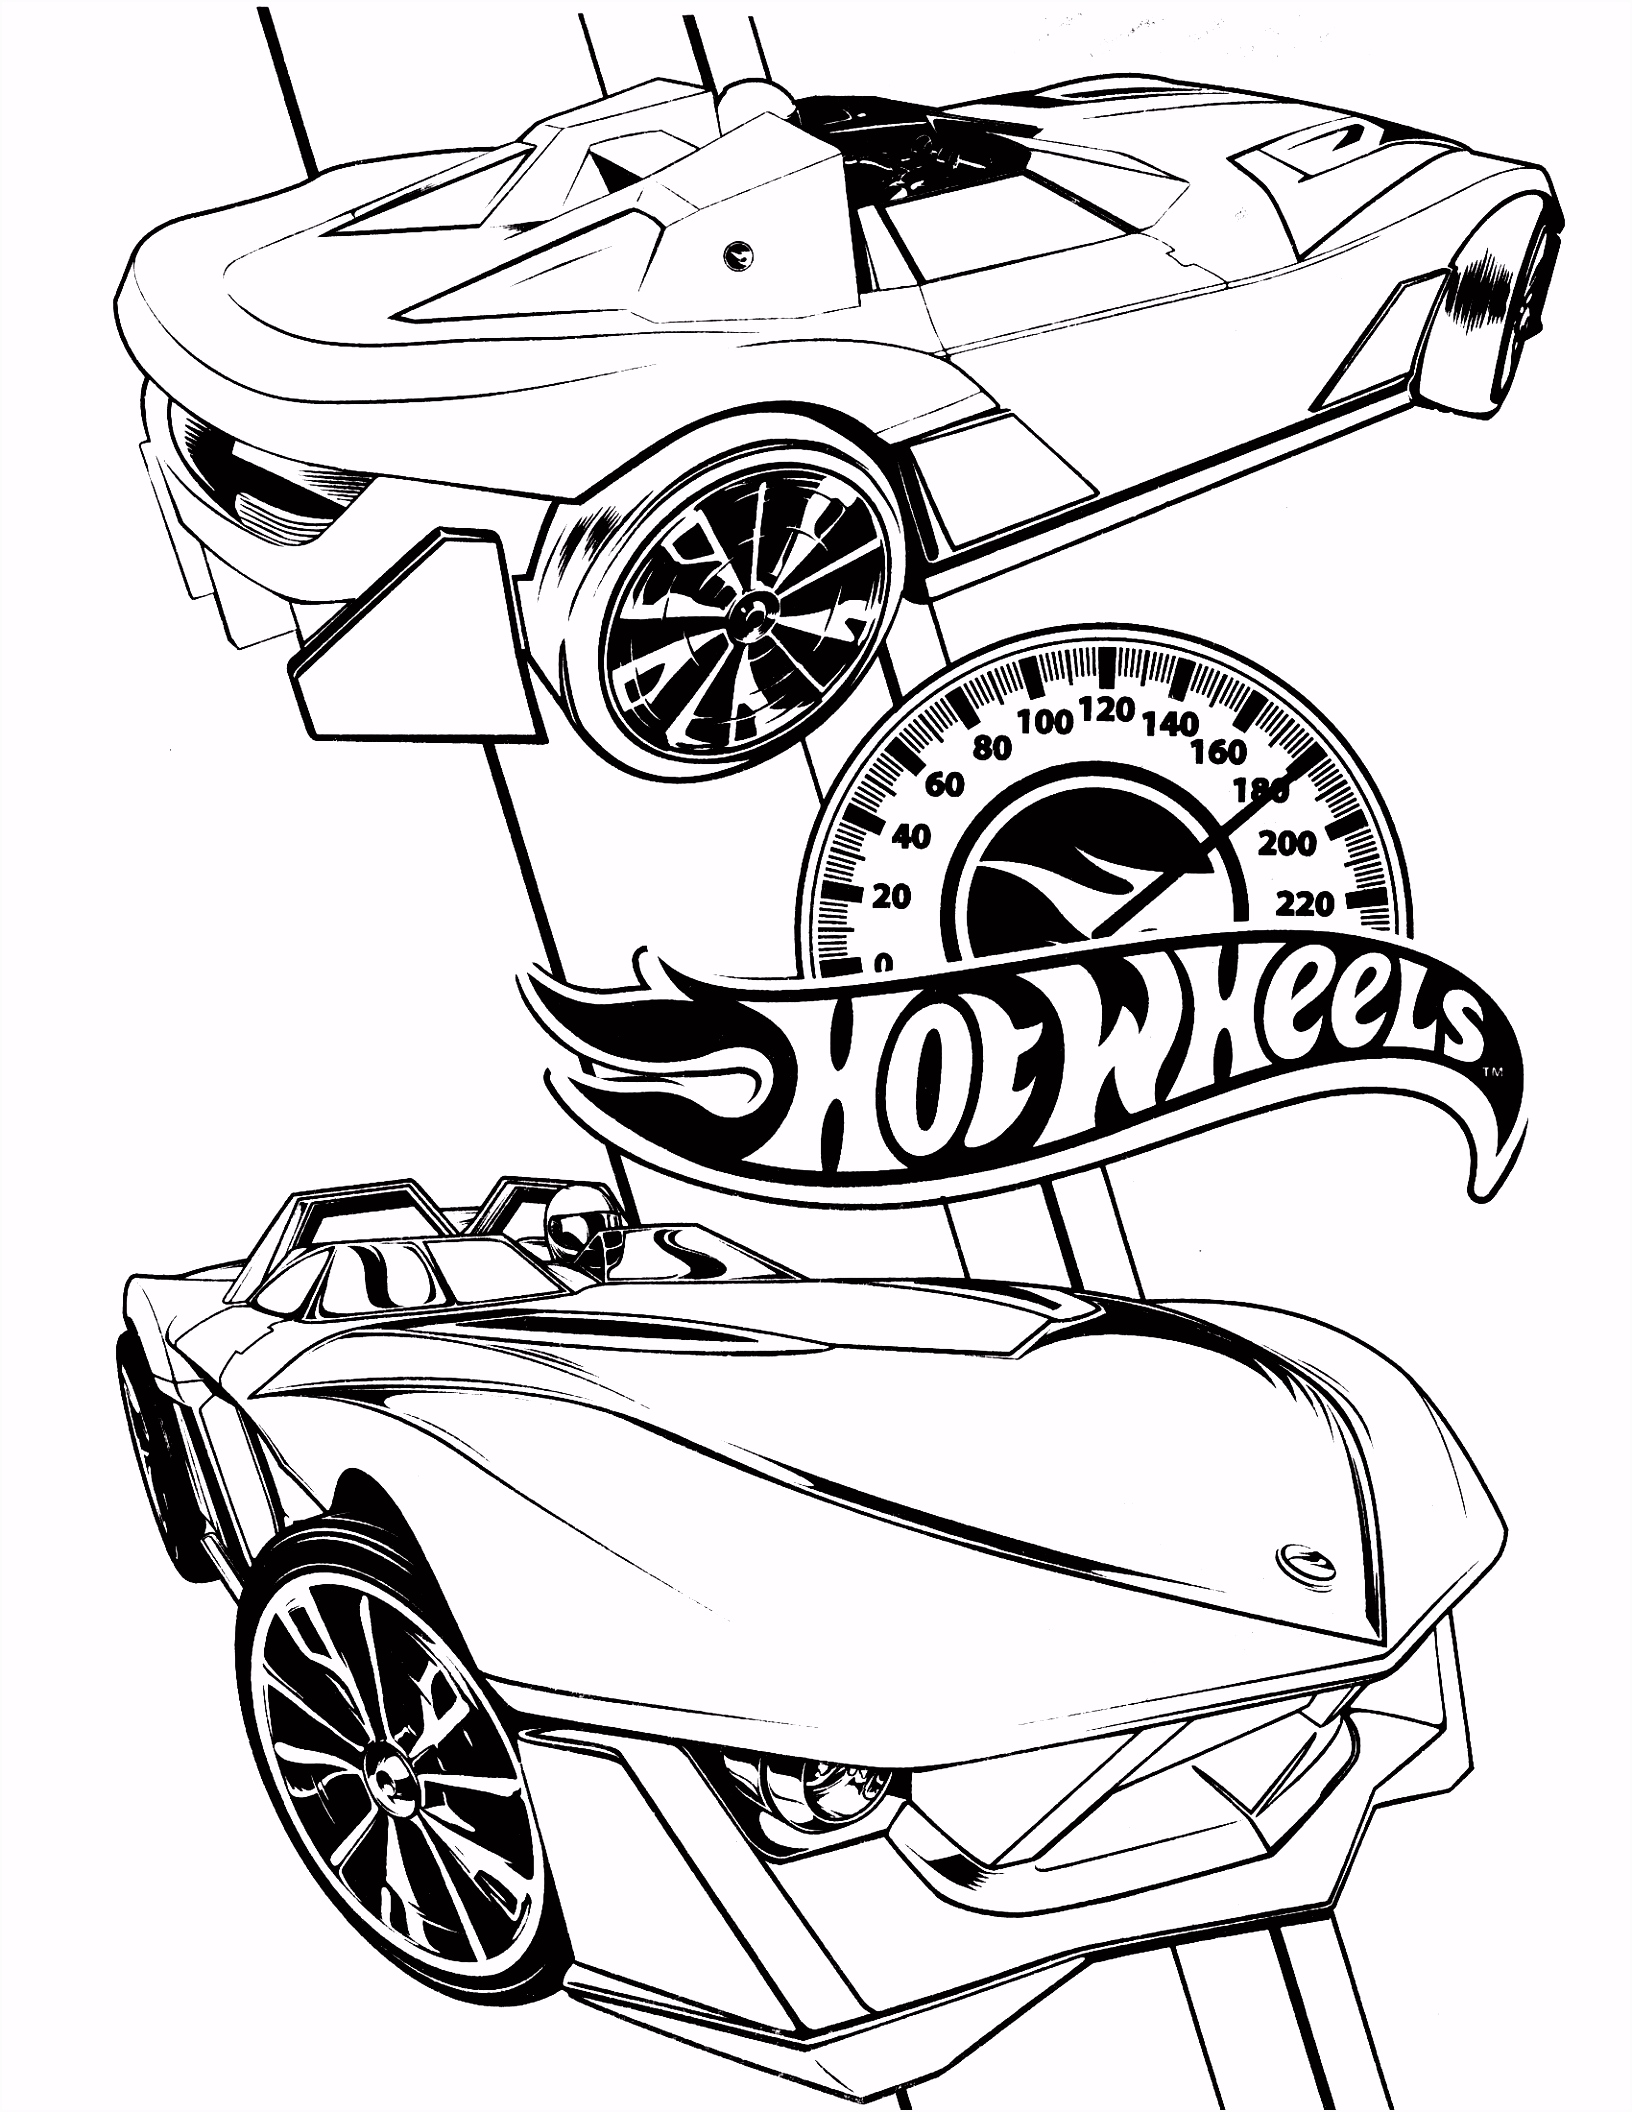 hot wheels coloring page Мади in 2018 Pinterest